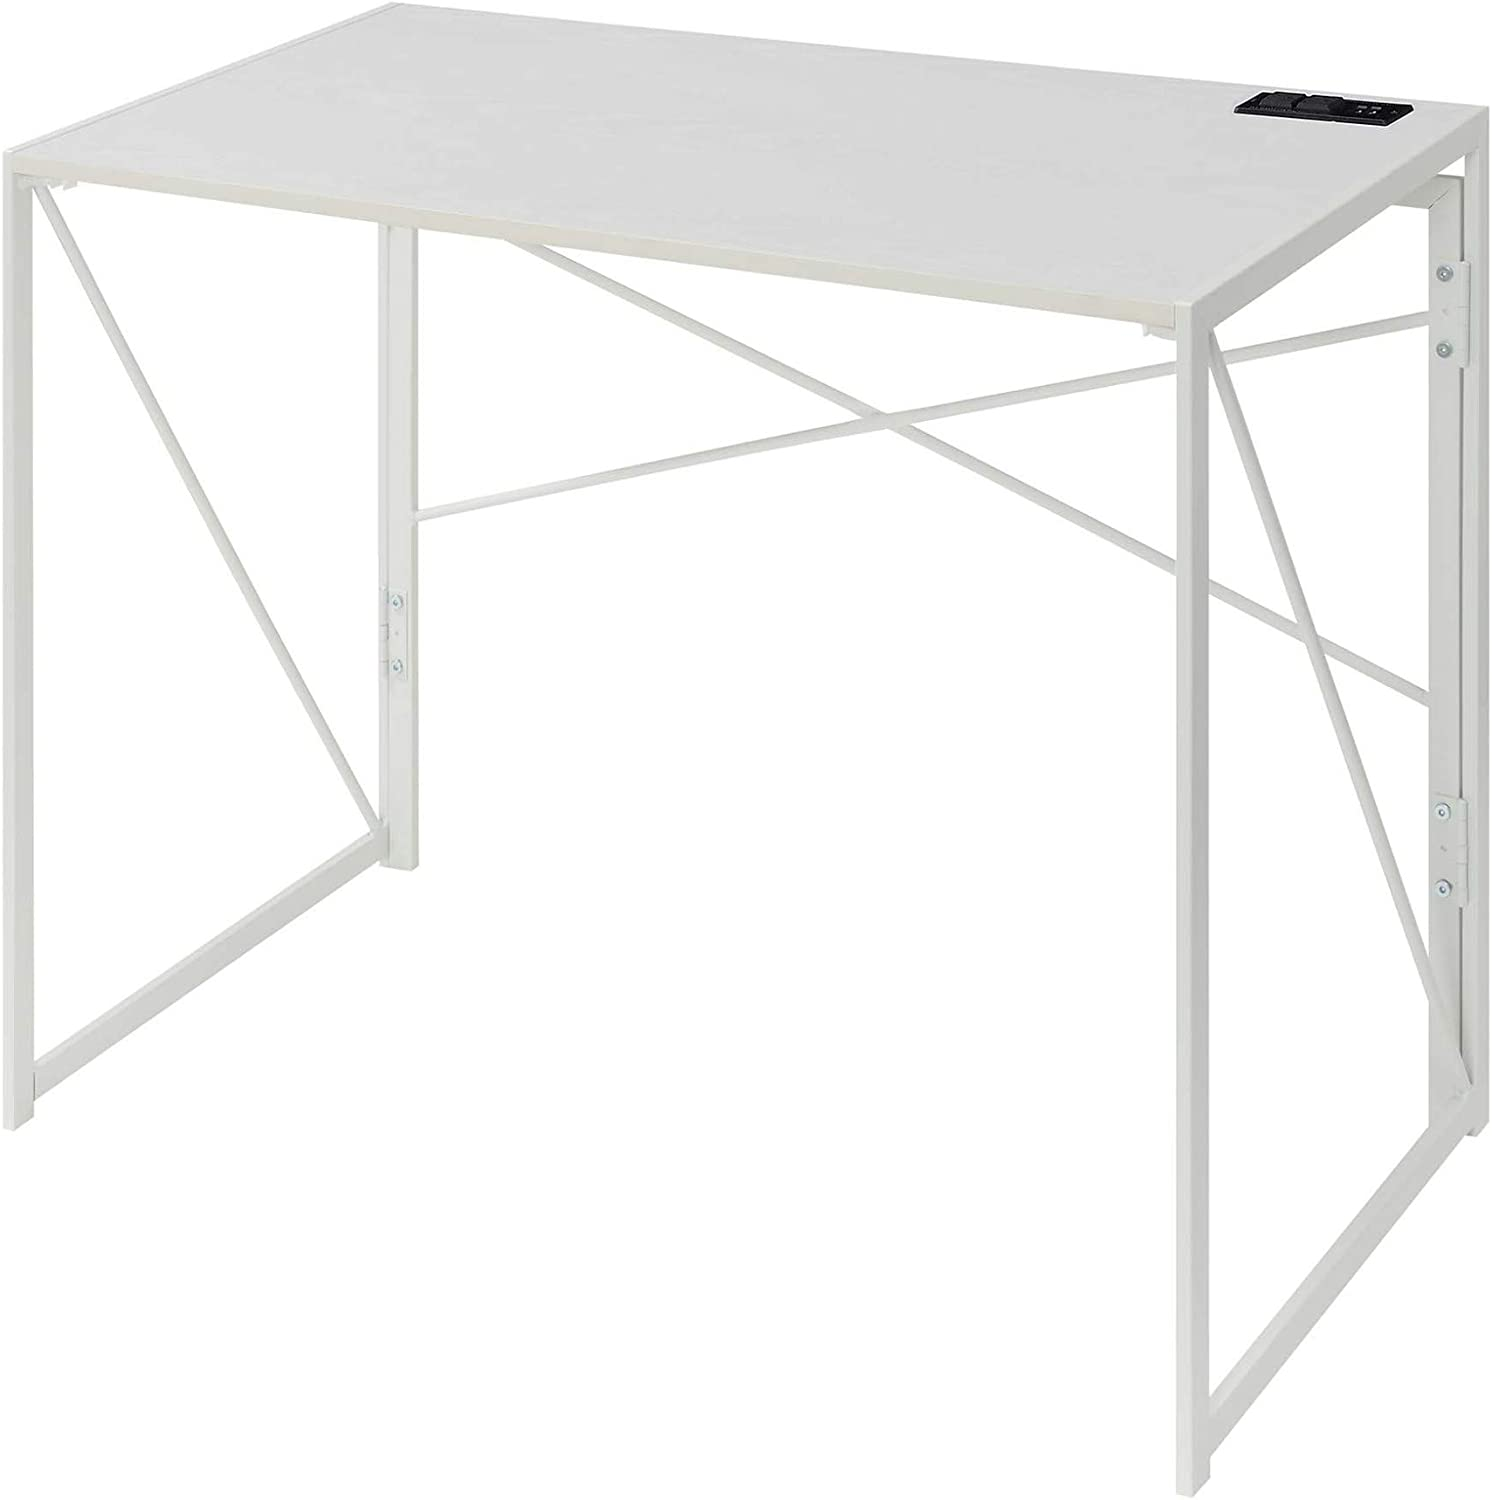 Convenience Concepts Xtra Folding Desk with Charging Station, White/White